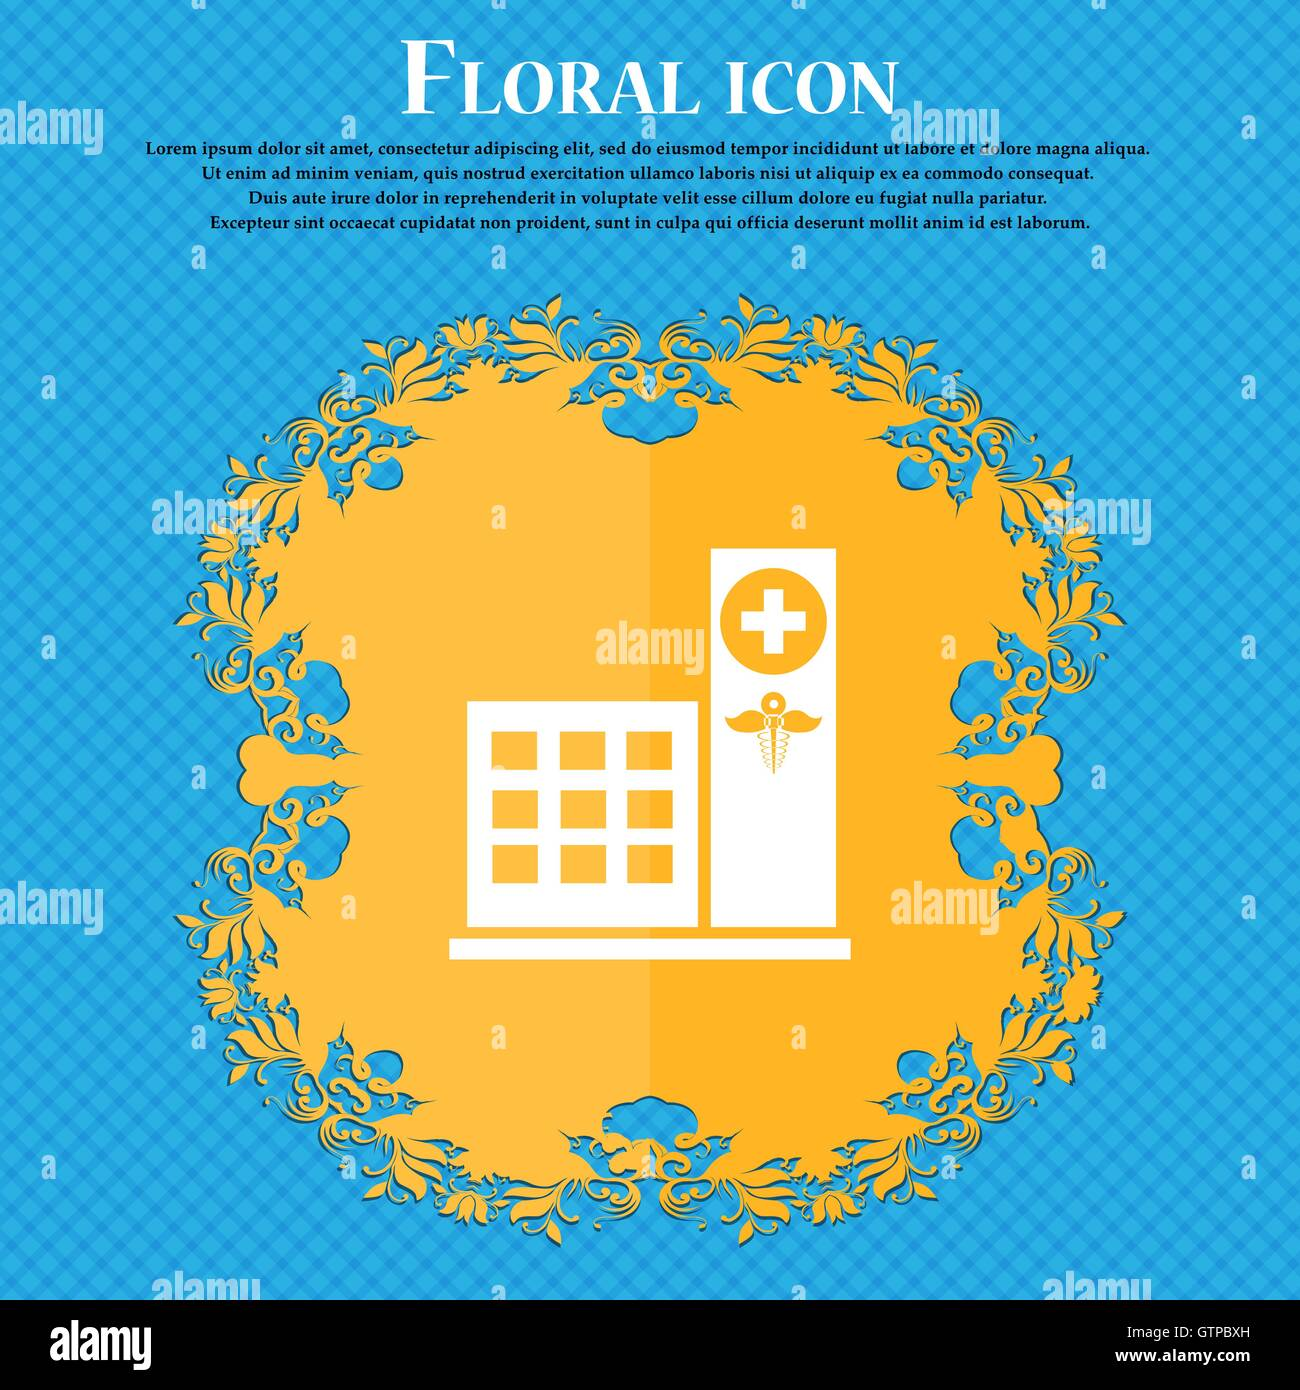 Hospital icon icon. Floral flat design on a blue abstract background with place for your text. Vector - Stock Image